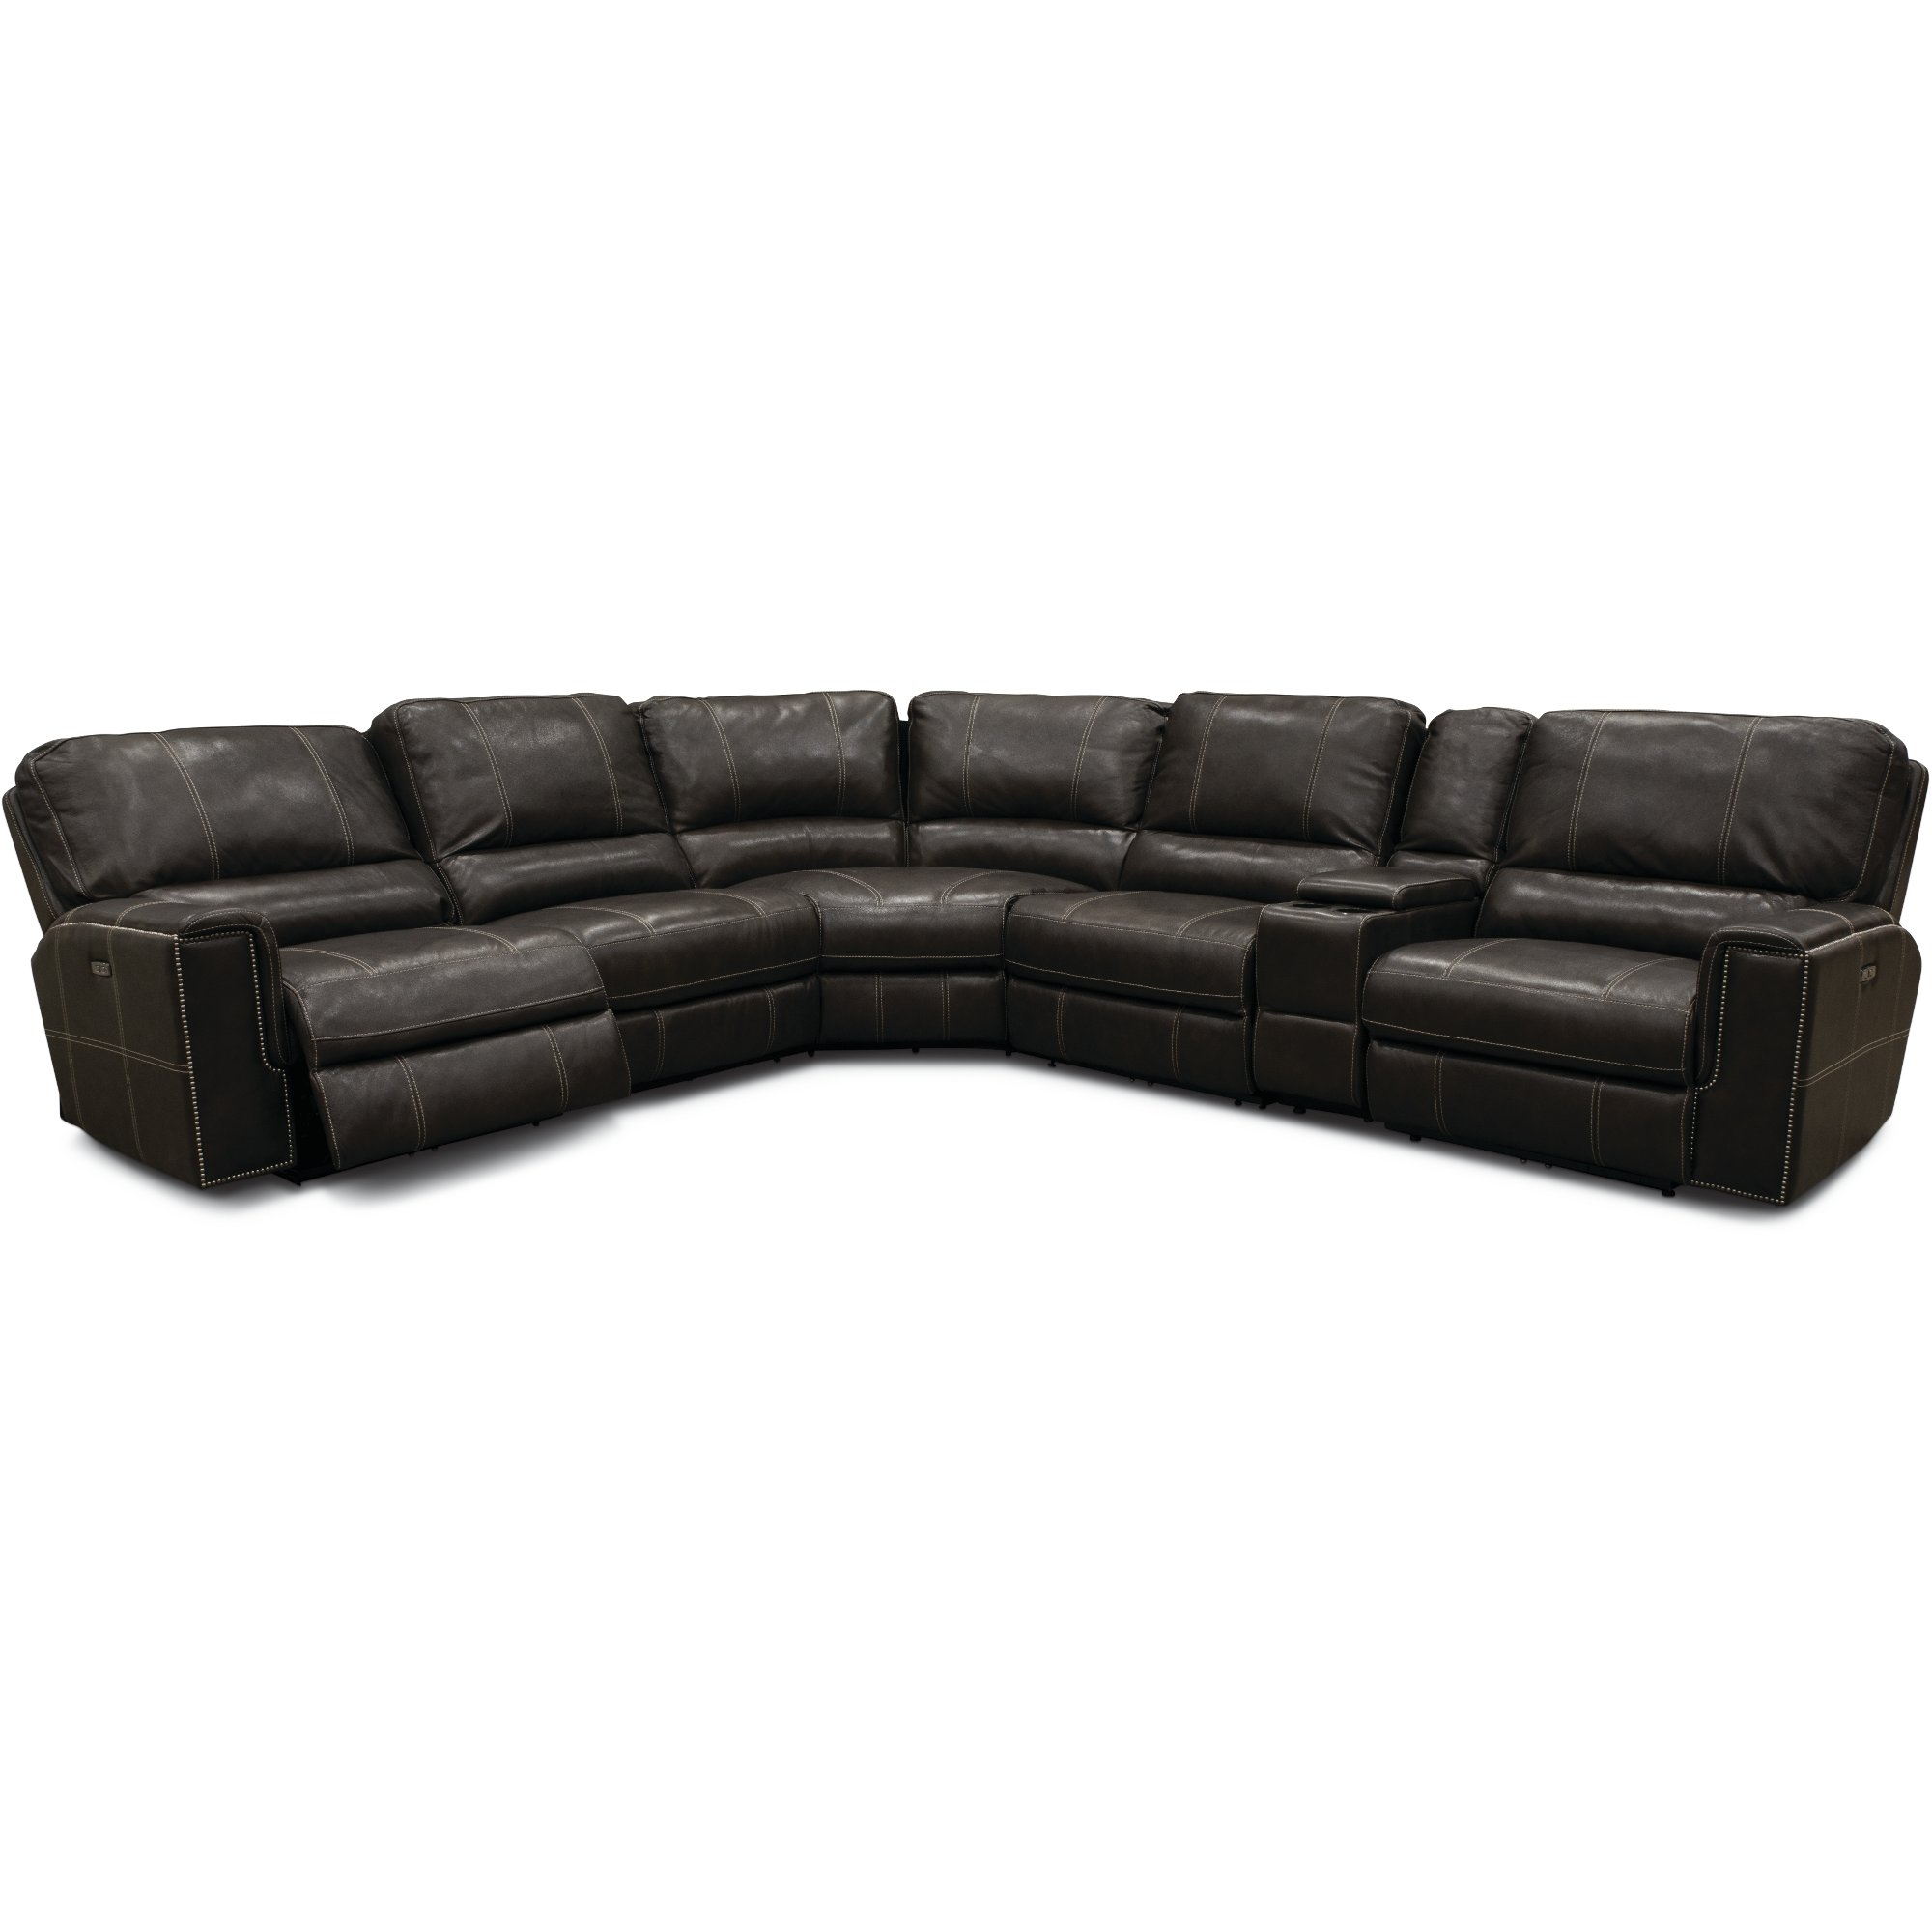 Charcoal Gray 6 Piece Power Reclining Sectional Sofa - Salinger | Rc pertaining to Denali Charcoal Grey 6 Piece Reclining Sectionals With 2 Power Headrests (Image 7 of 30)